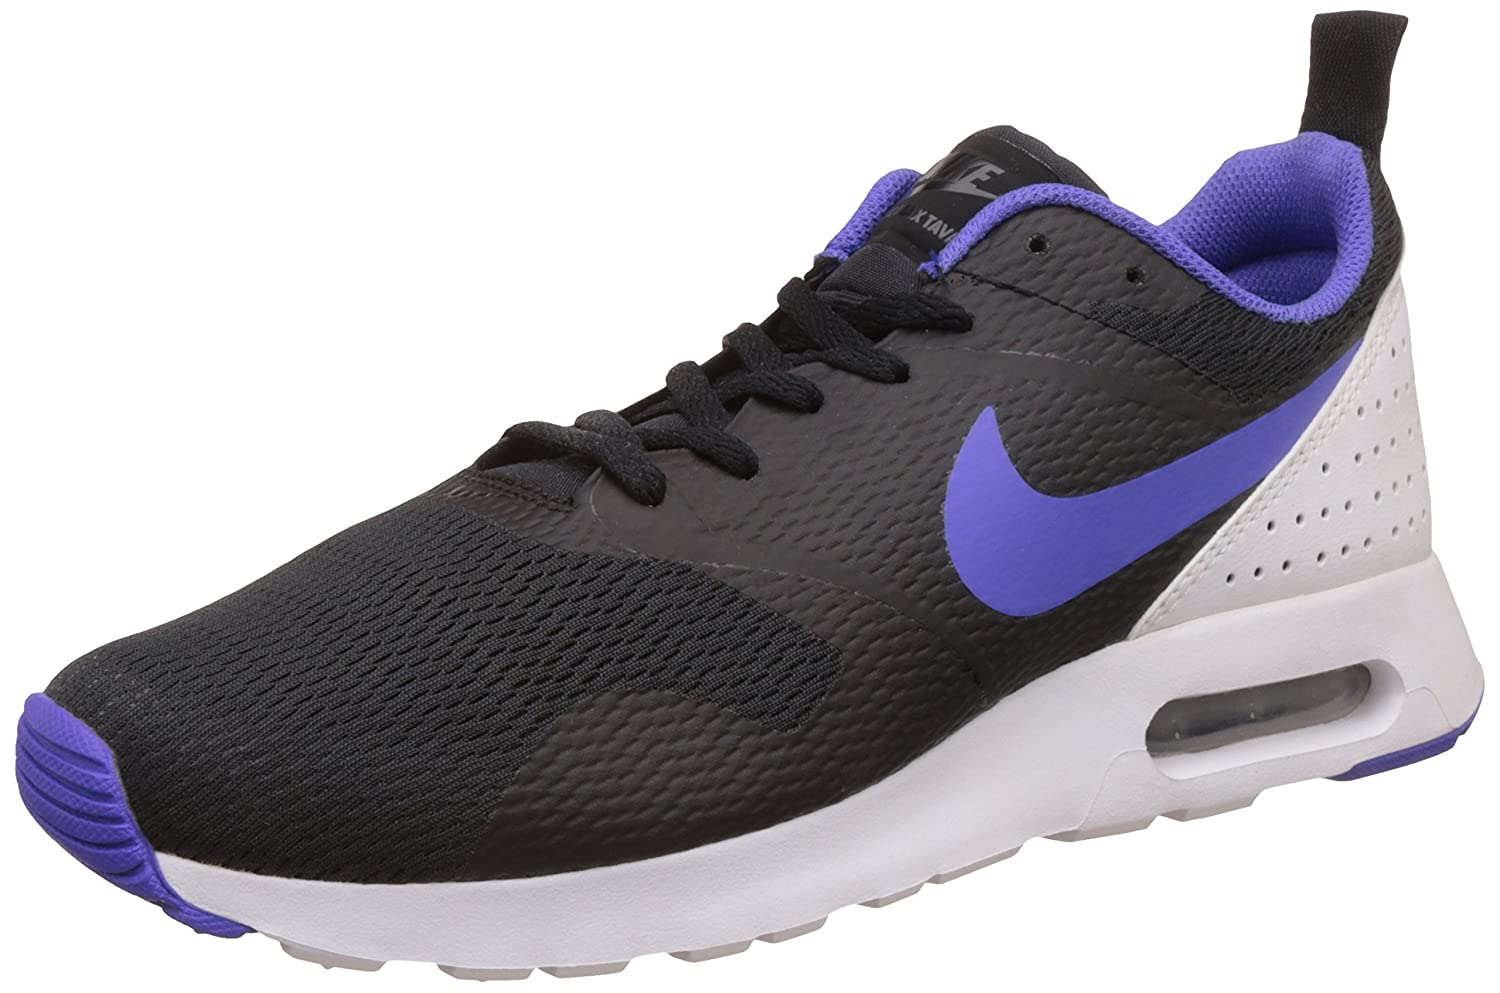 [ナイキ] NIKE スニーカー AIR MAX TRASIT B006TCNFZ0 11.5 D(M) US Black/Persian Violet/White